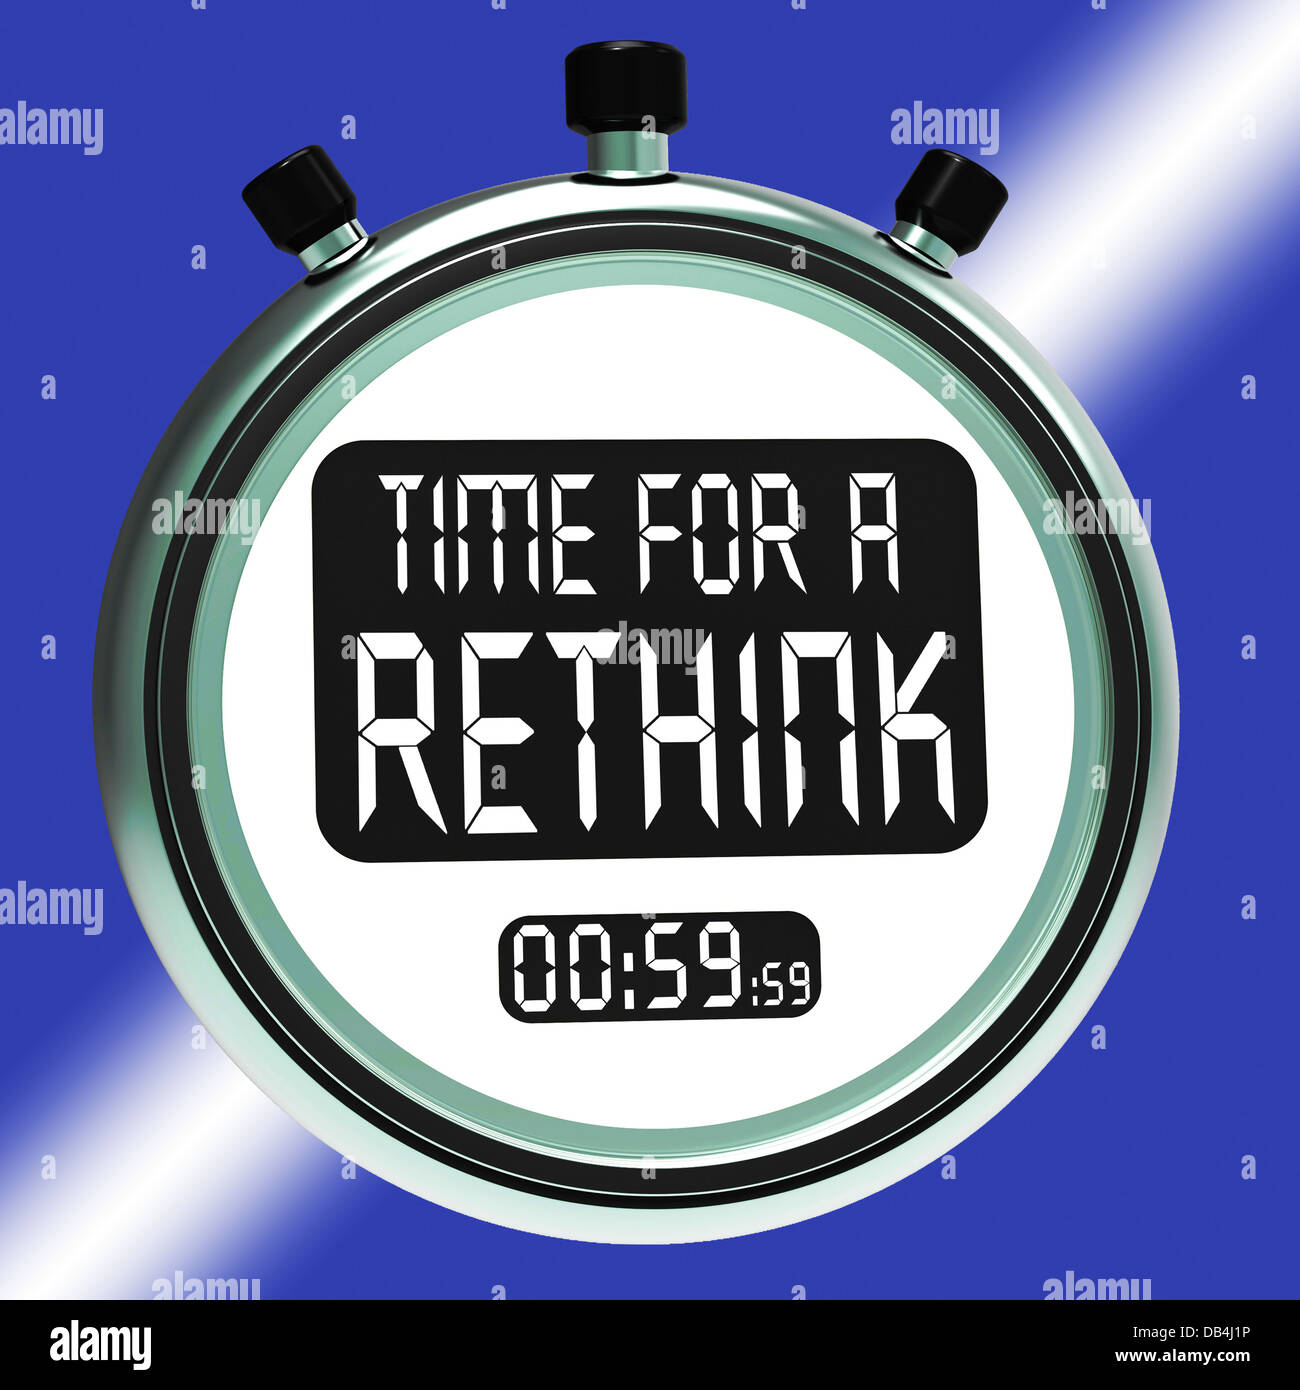 Time For A Rethink Means Change Strategy - Stock Image